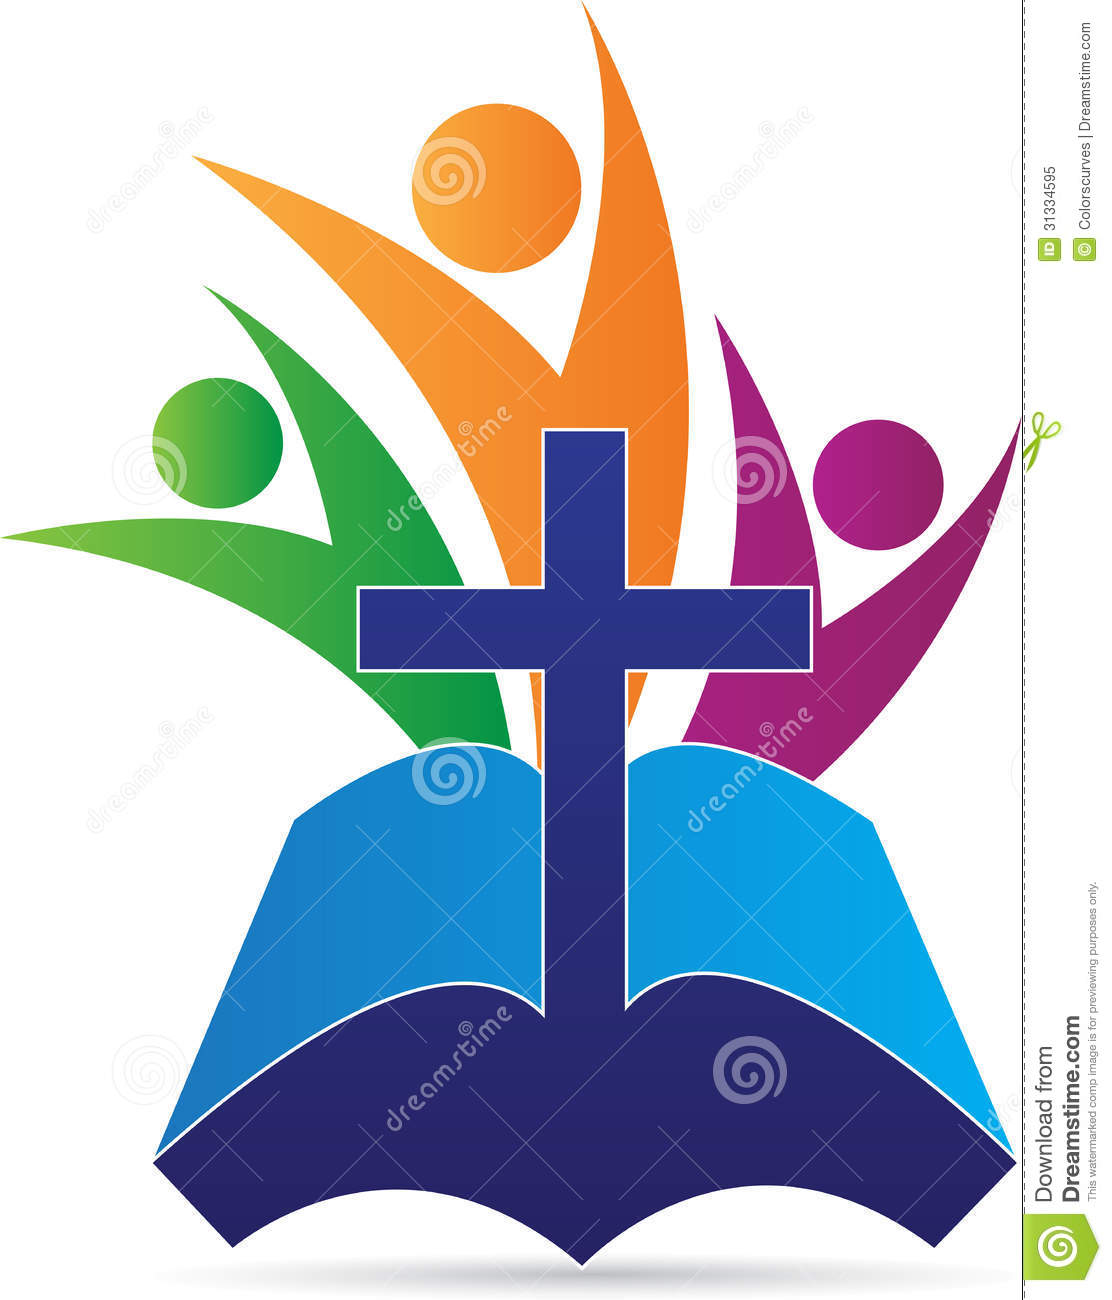 holy bible cross people stock vector illustration of illustration rh dreamstime com Religious Symbols Clip Art Jesus Is Lord Clip Art